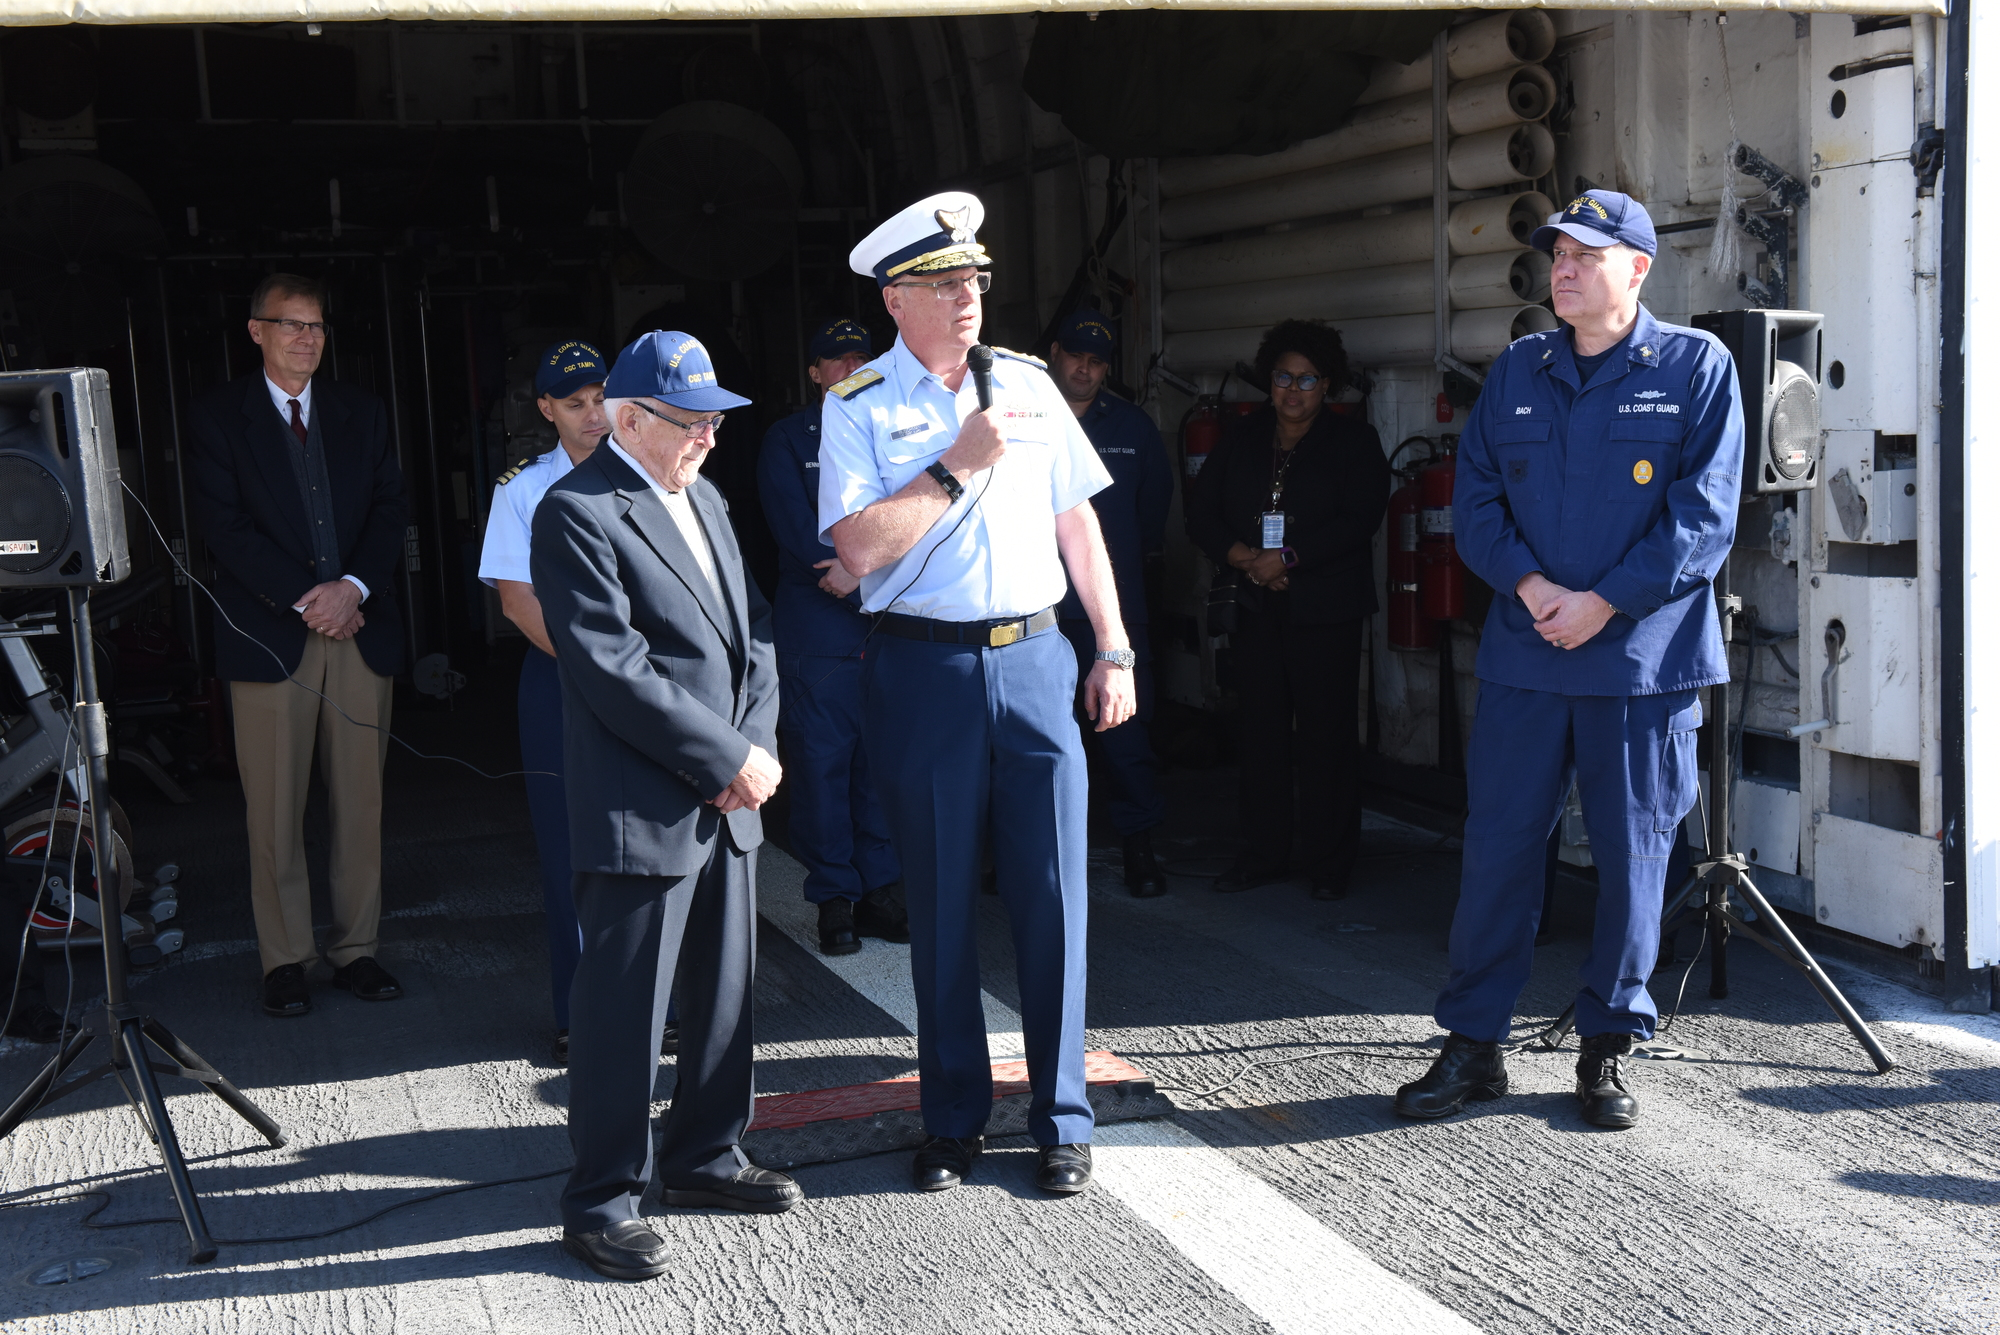 Alex Obrizok, a 96-year-old Coast Guard veteran meets Vice Adm. Scott Buschman, Coast Guard Atlantic Area Commander, on the Coast Guard Cutter Tampa